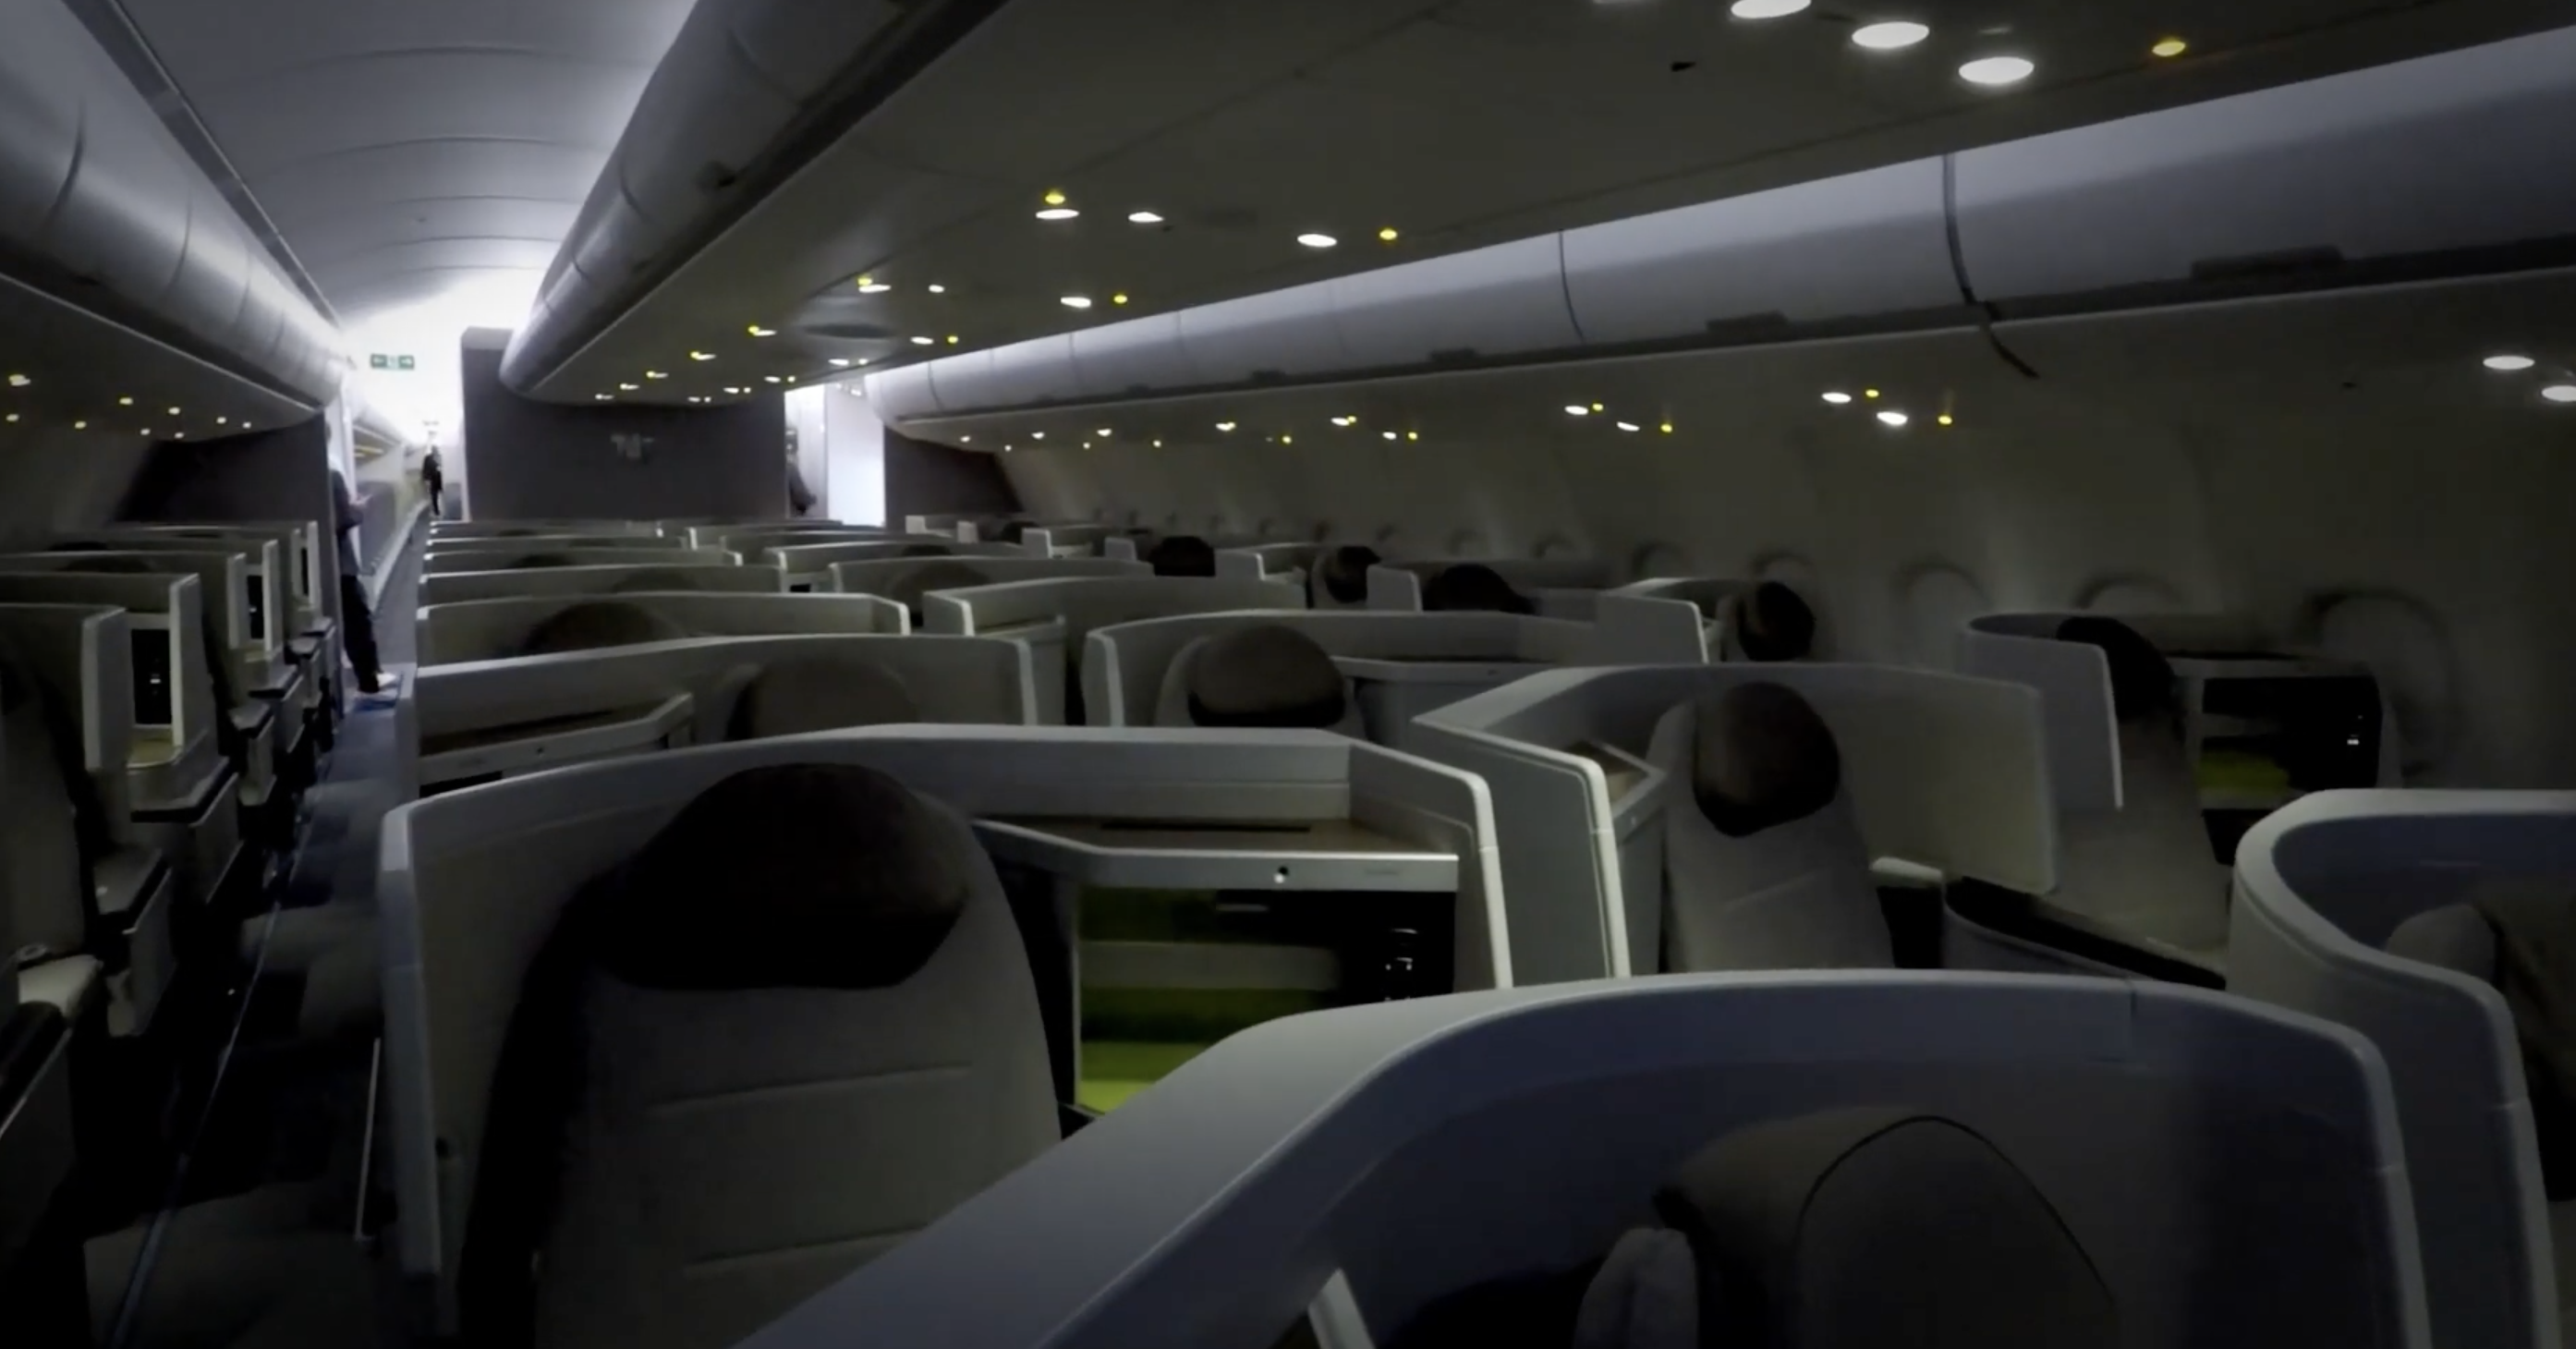 tap air Portugal business class seats